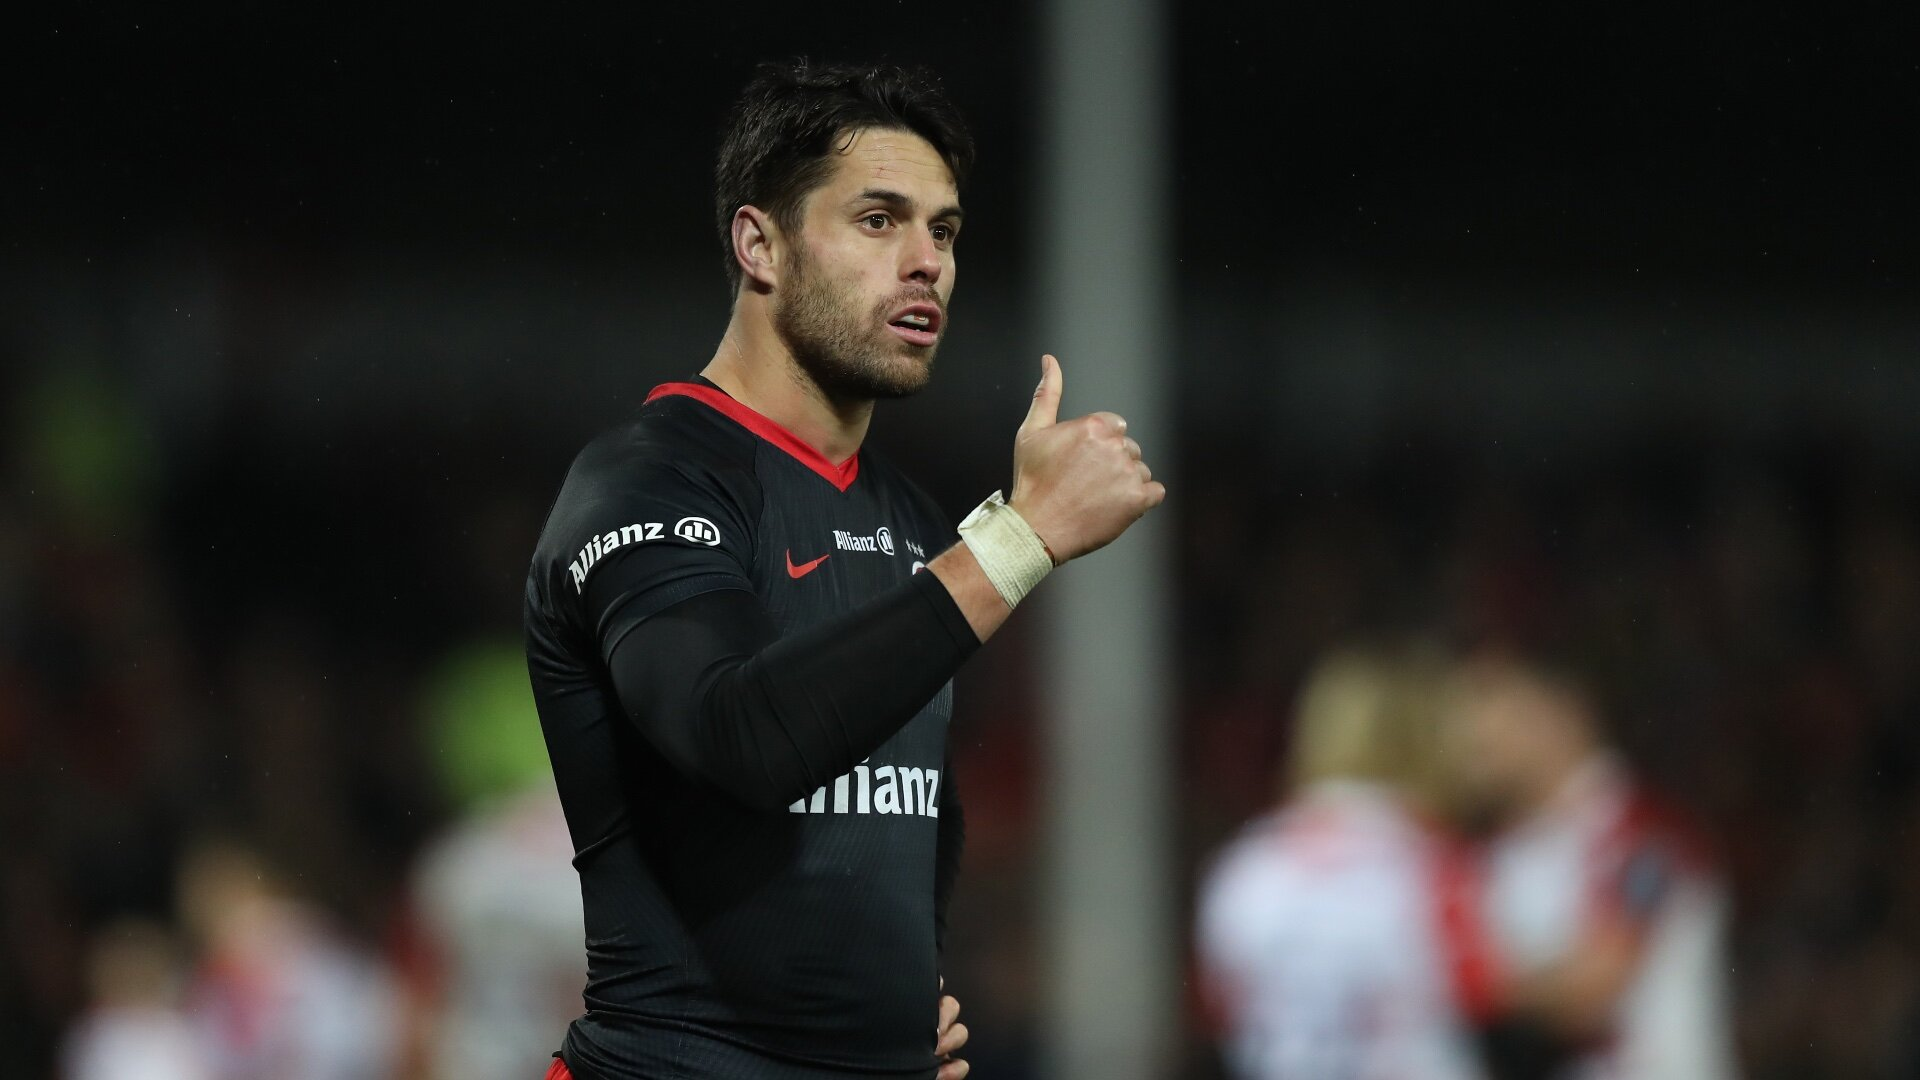 Saracens' Barbarians representation climbs to 11 as another 8 called in to face England